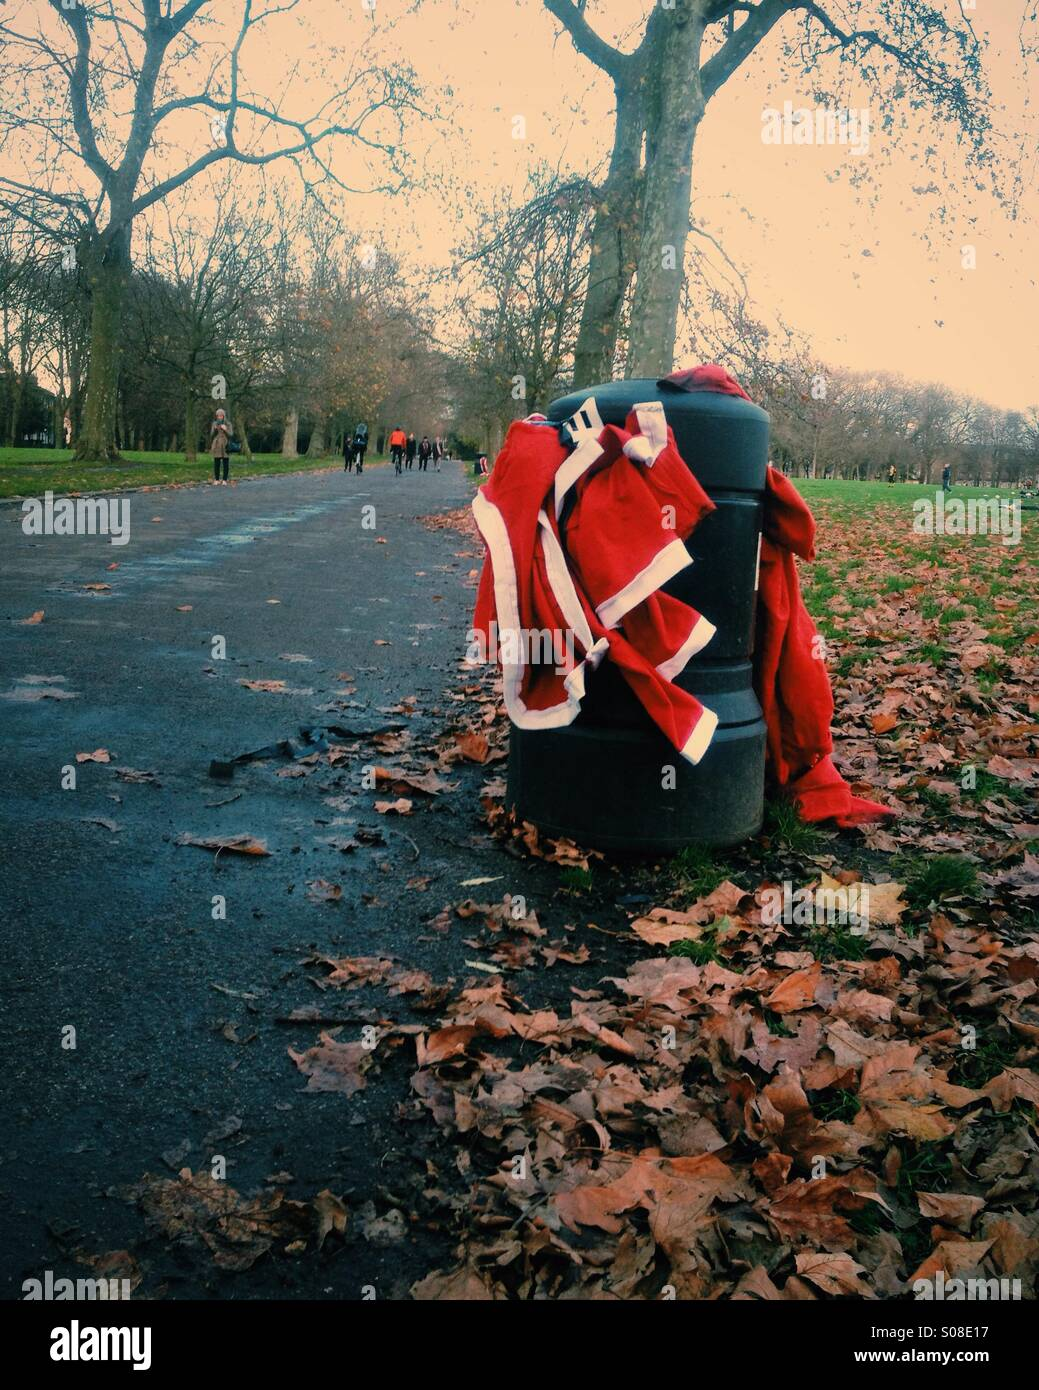 Santa costumes in a trash can after a Santa Run Charity event, London. - Stock Image